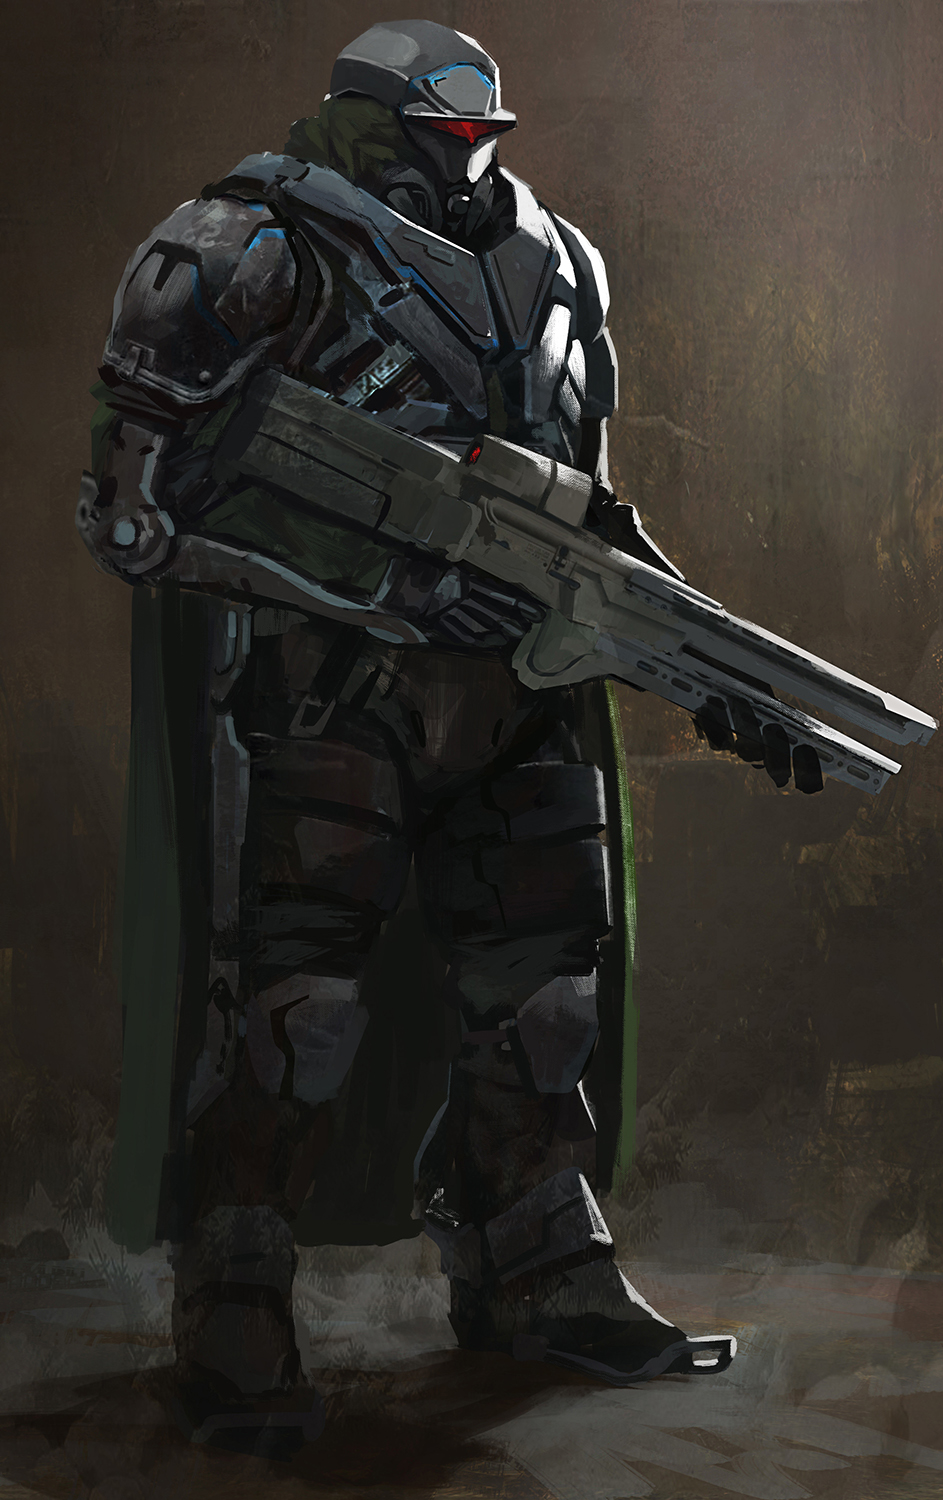 Messing around, sometimes it's just nice to paint some cool solider dude. #scifi